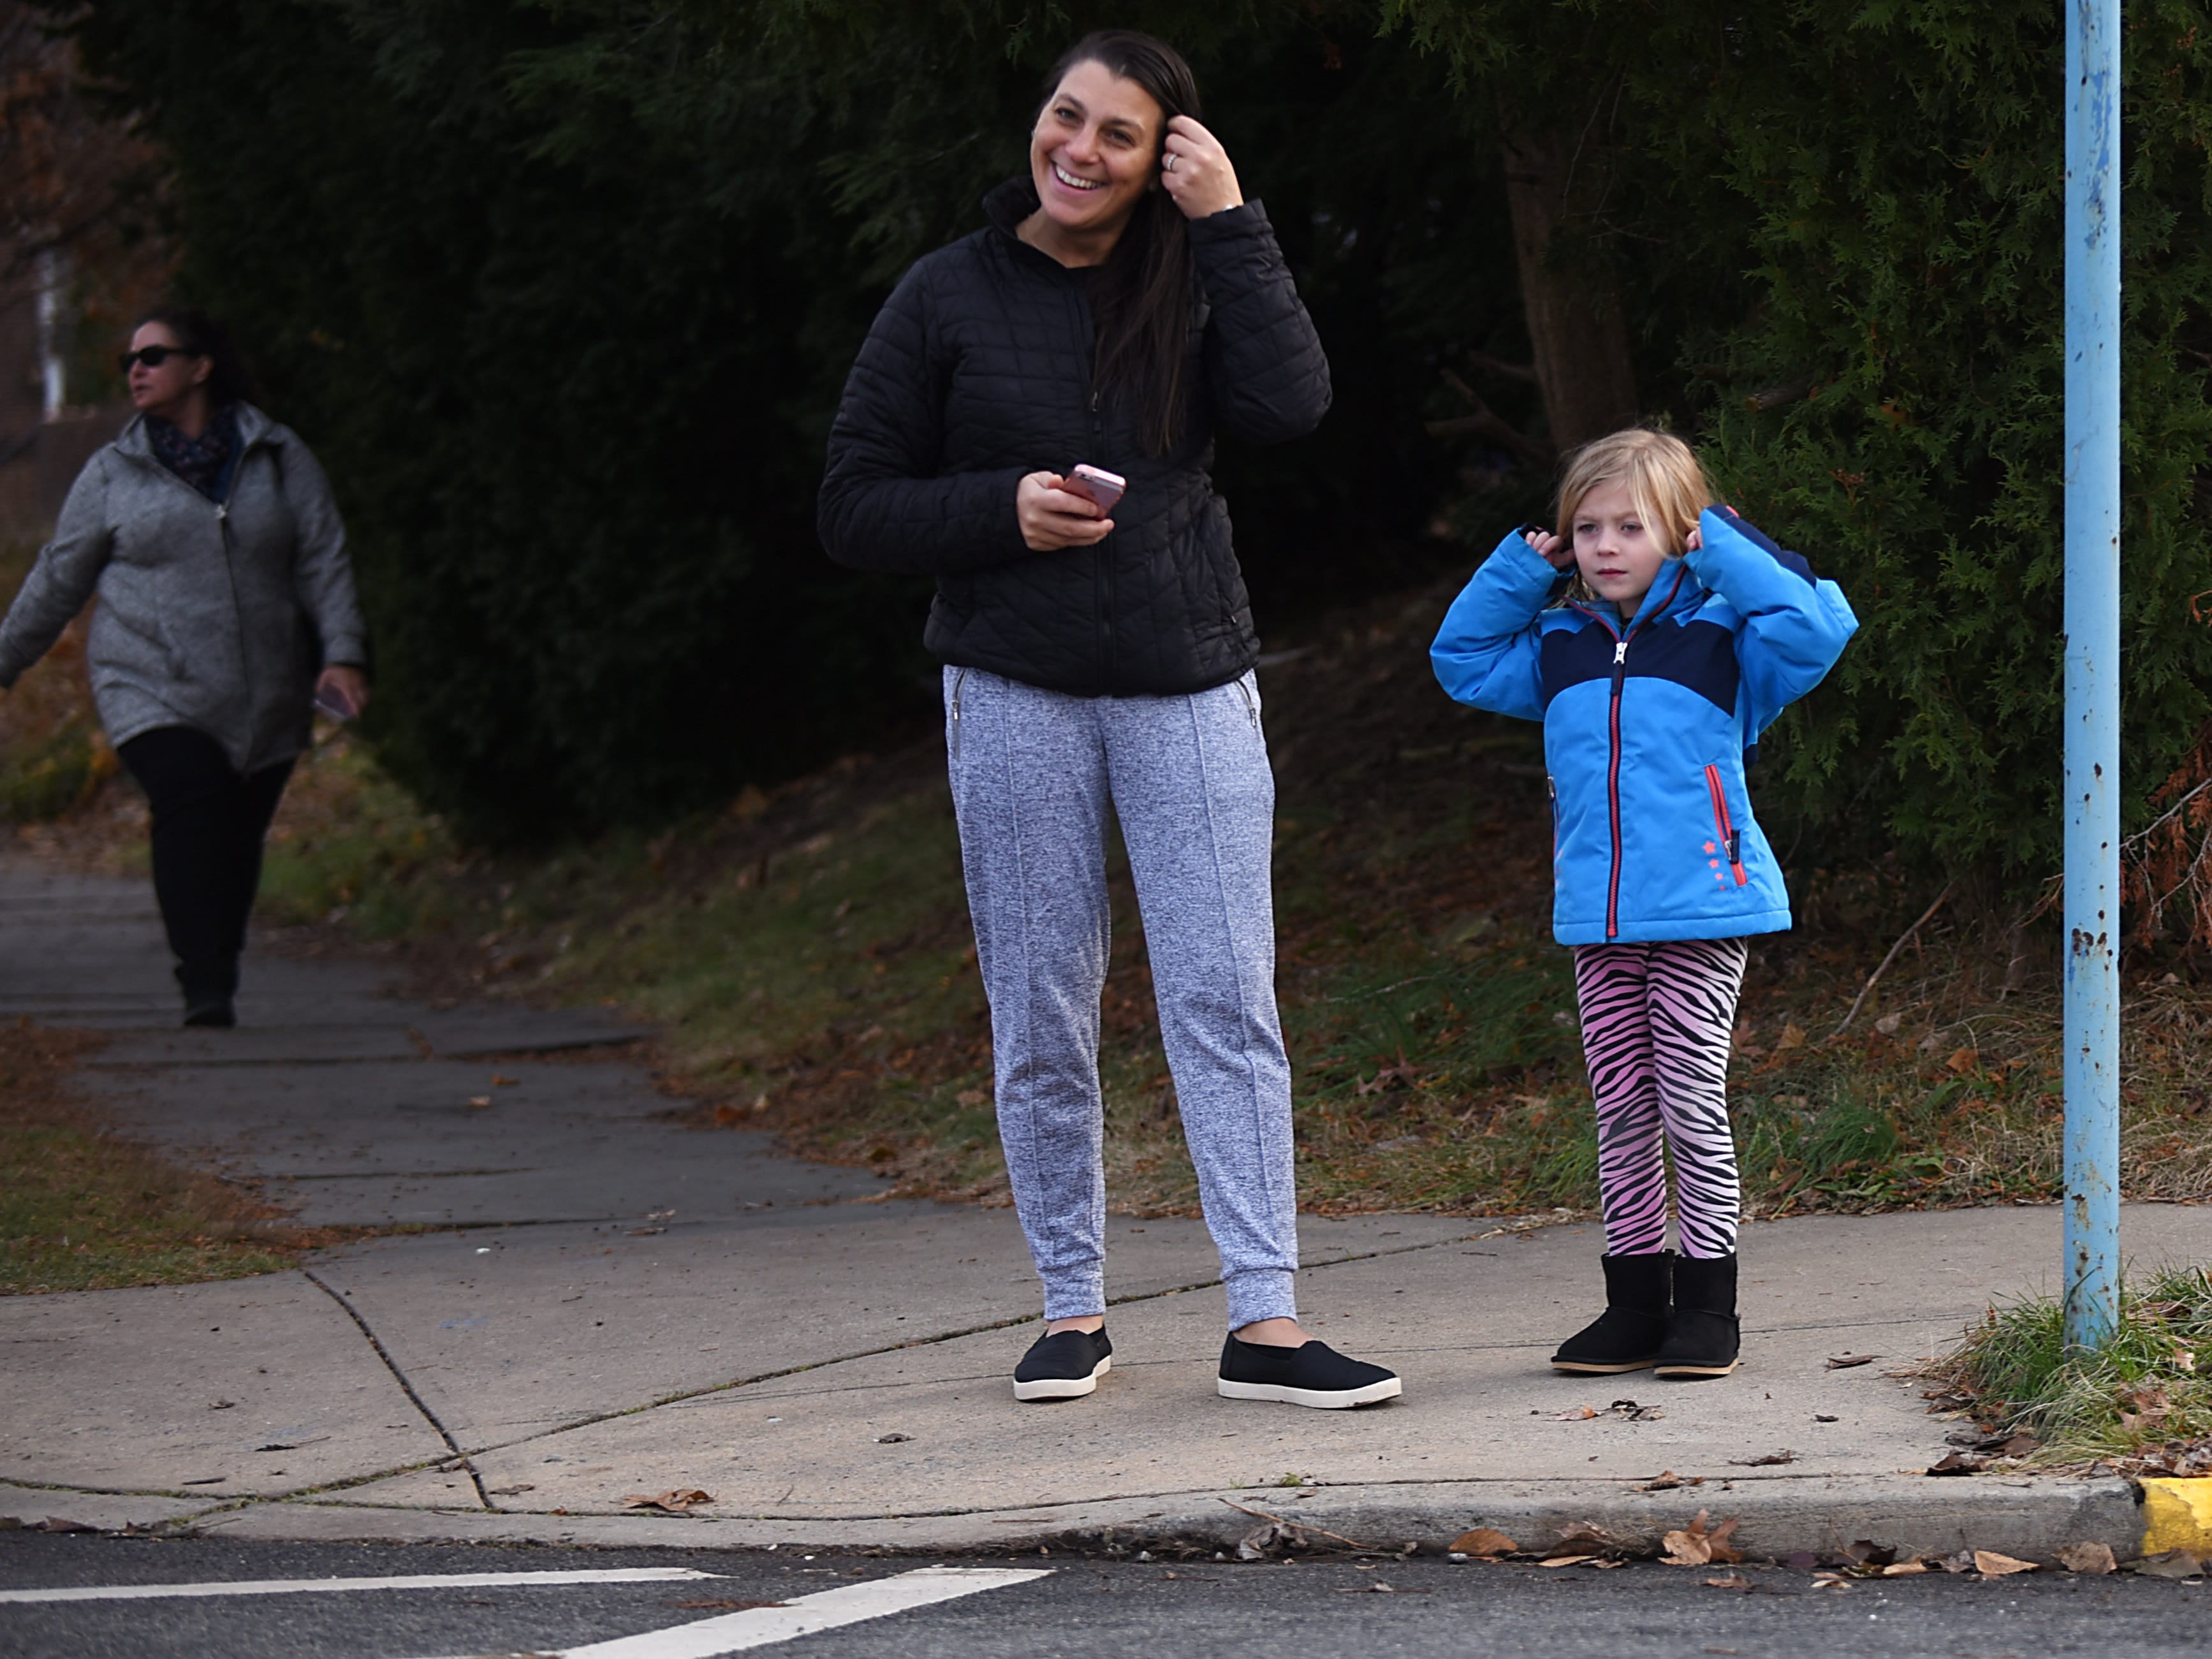 A little girl covers her ears during the Rutherford Football parade in Rutherford on Saturday December 1, 2018.